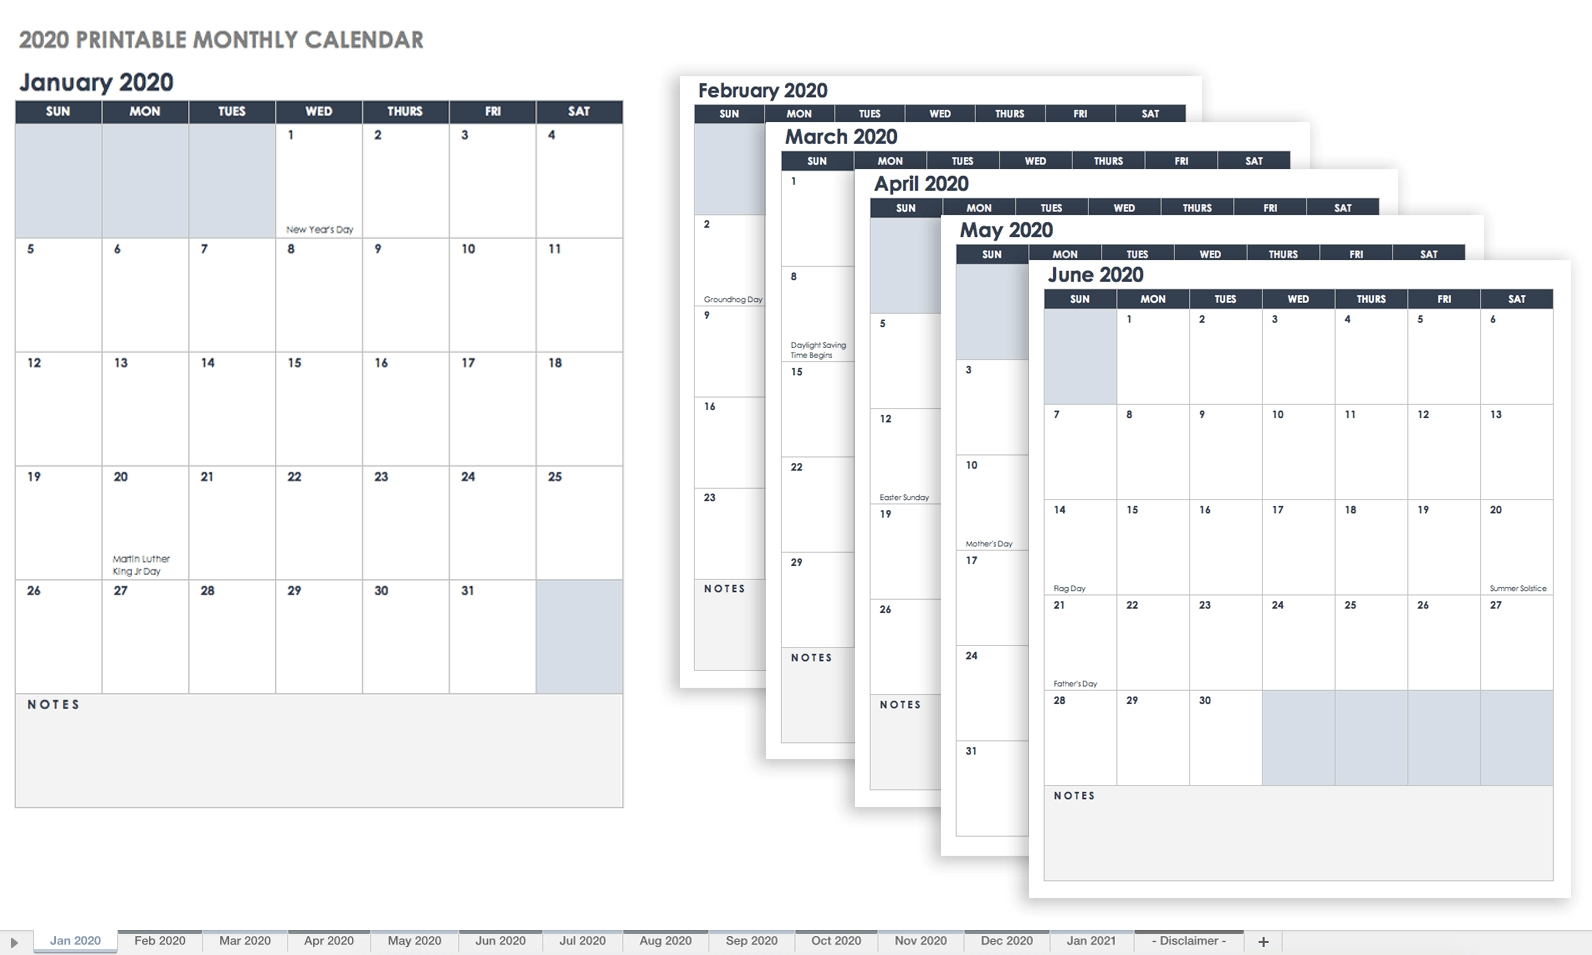 Free Blank Calendar Templates - Smartsheet throughout Large Blank Monthly Calendar To Fill In